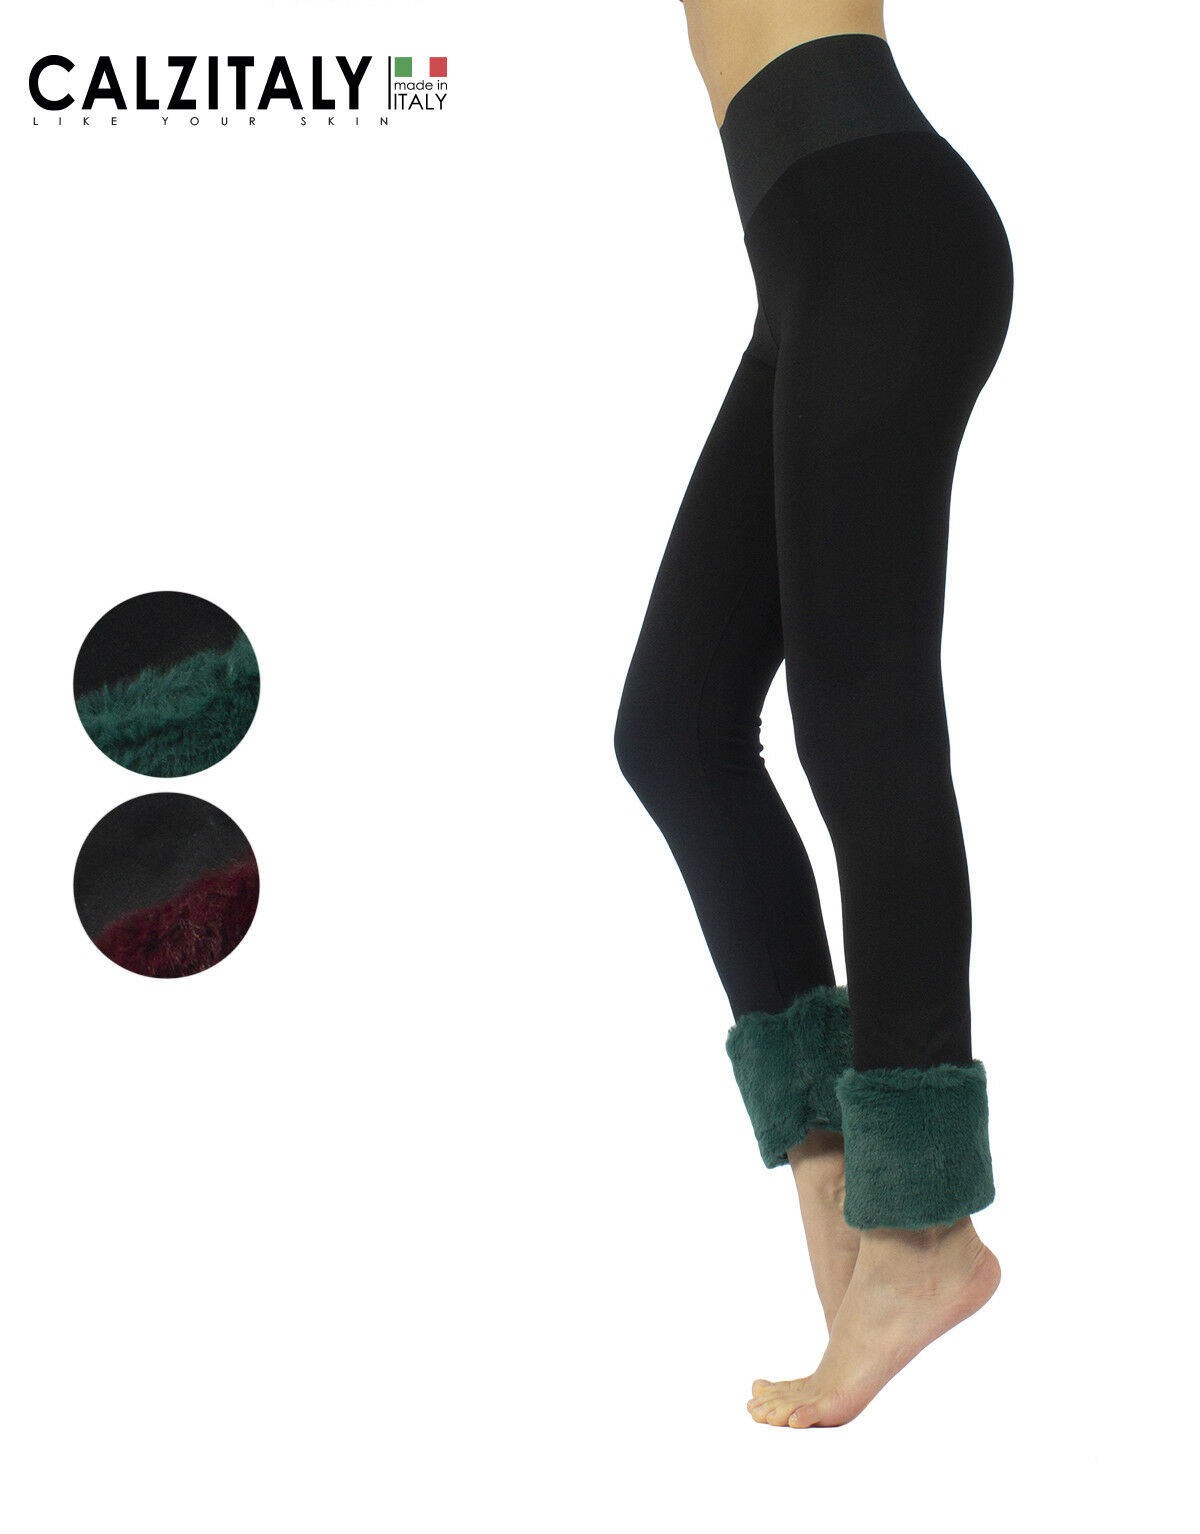 Push Up Leggings with Faux Fur, Stretchy Shaper Leggings Fashion, XS, S, M, L,